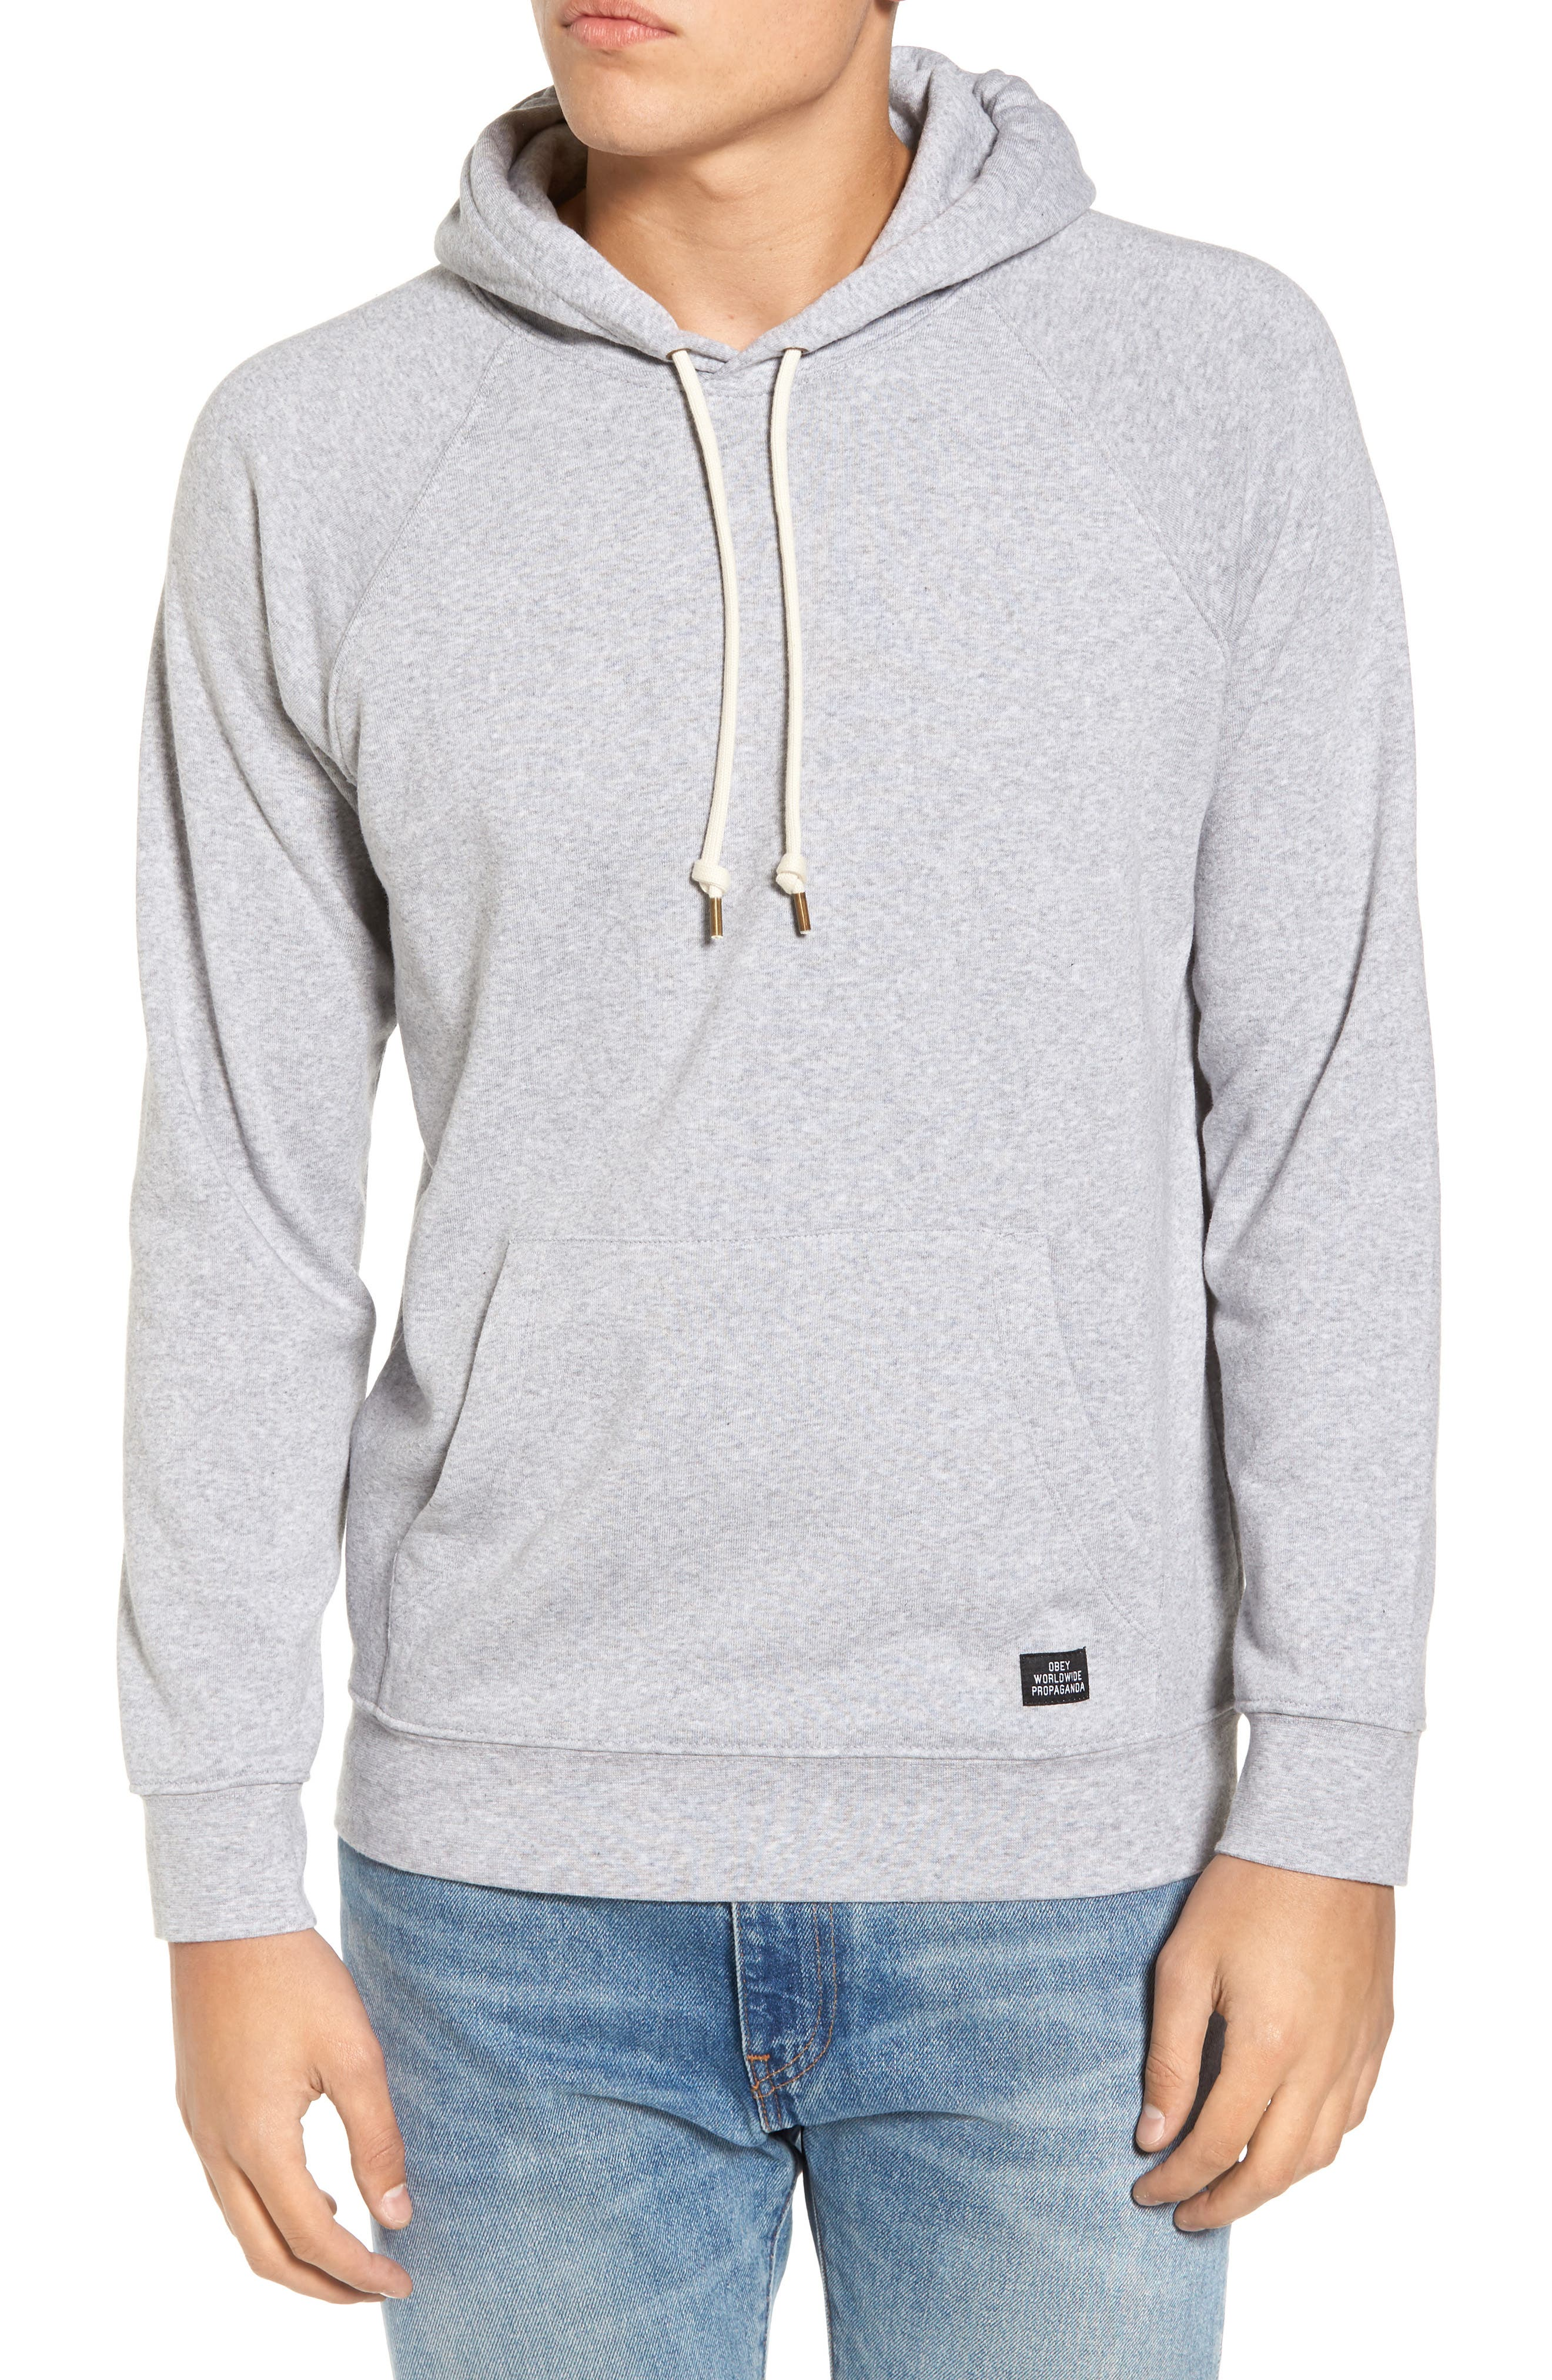 Lofty Creature Comforts Hoodie,                         Main,                         color, 061